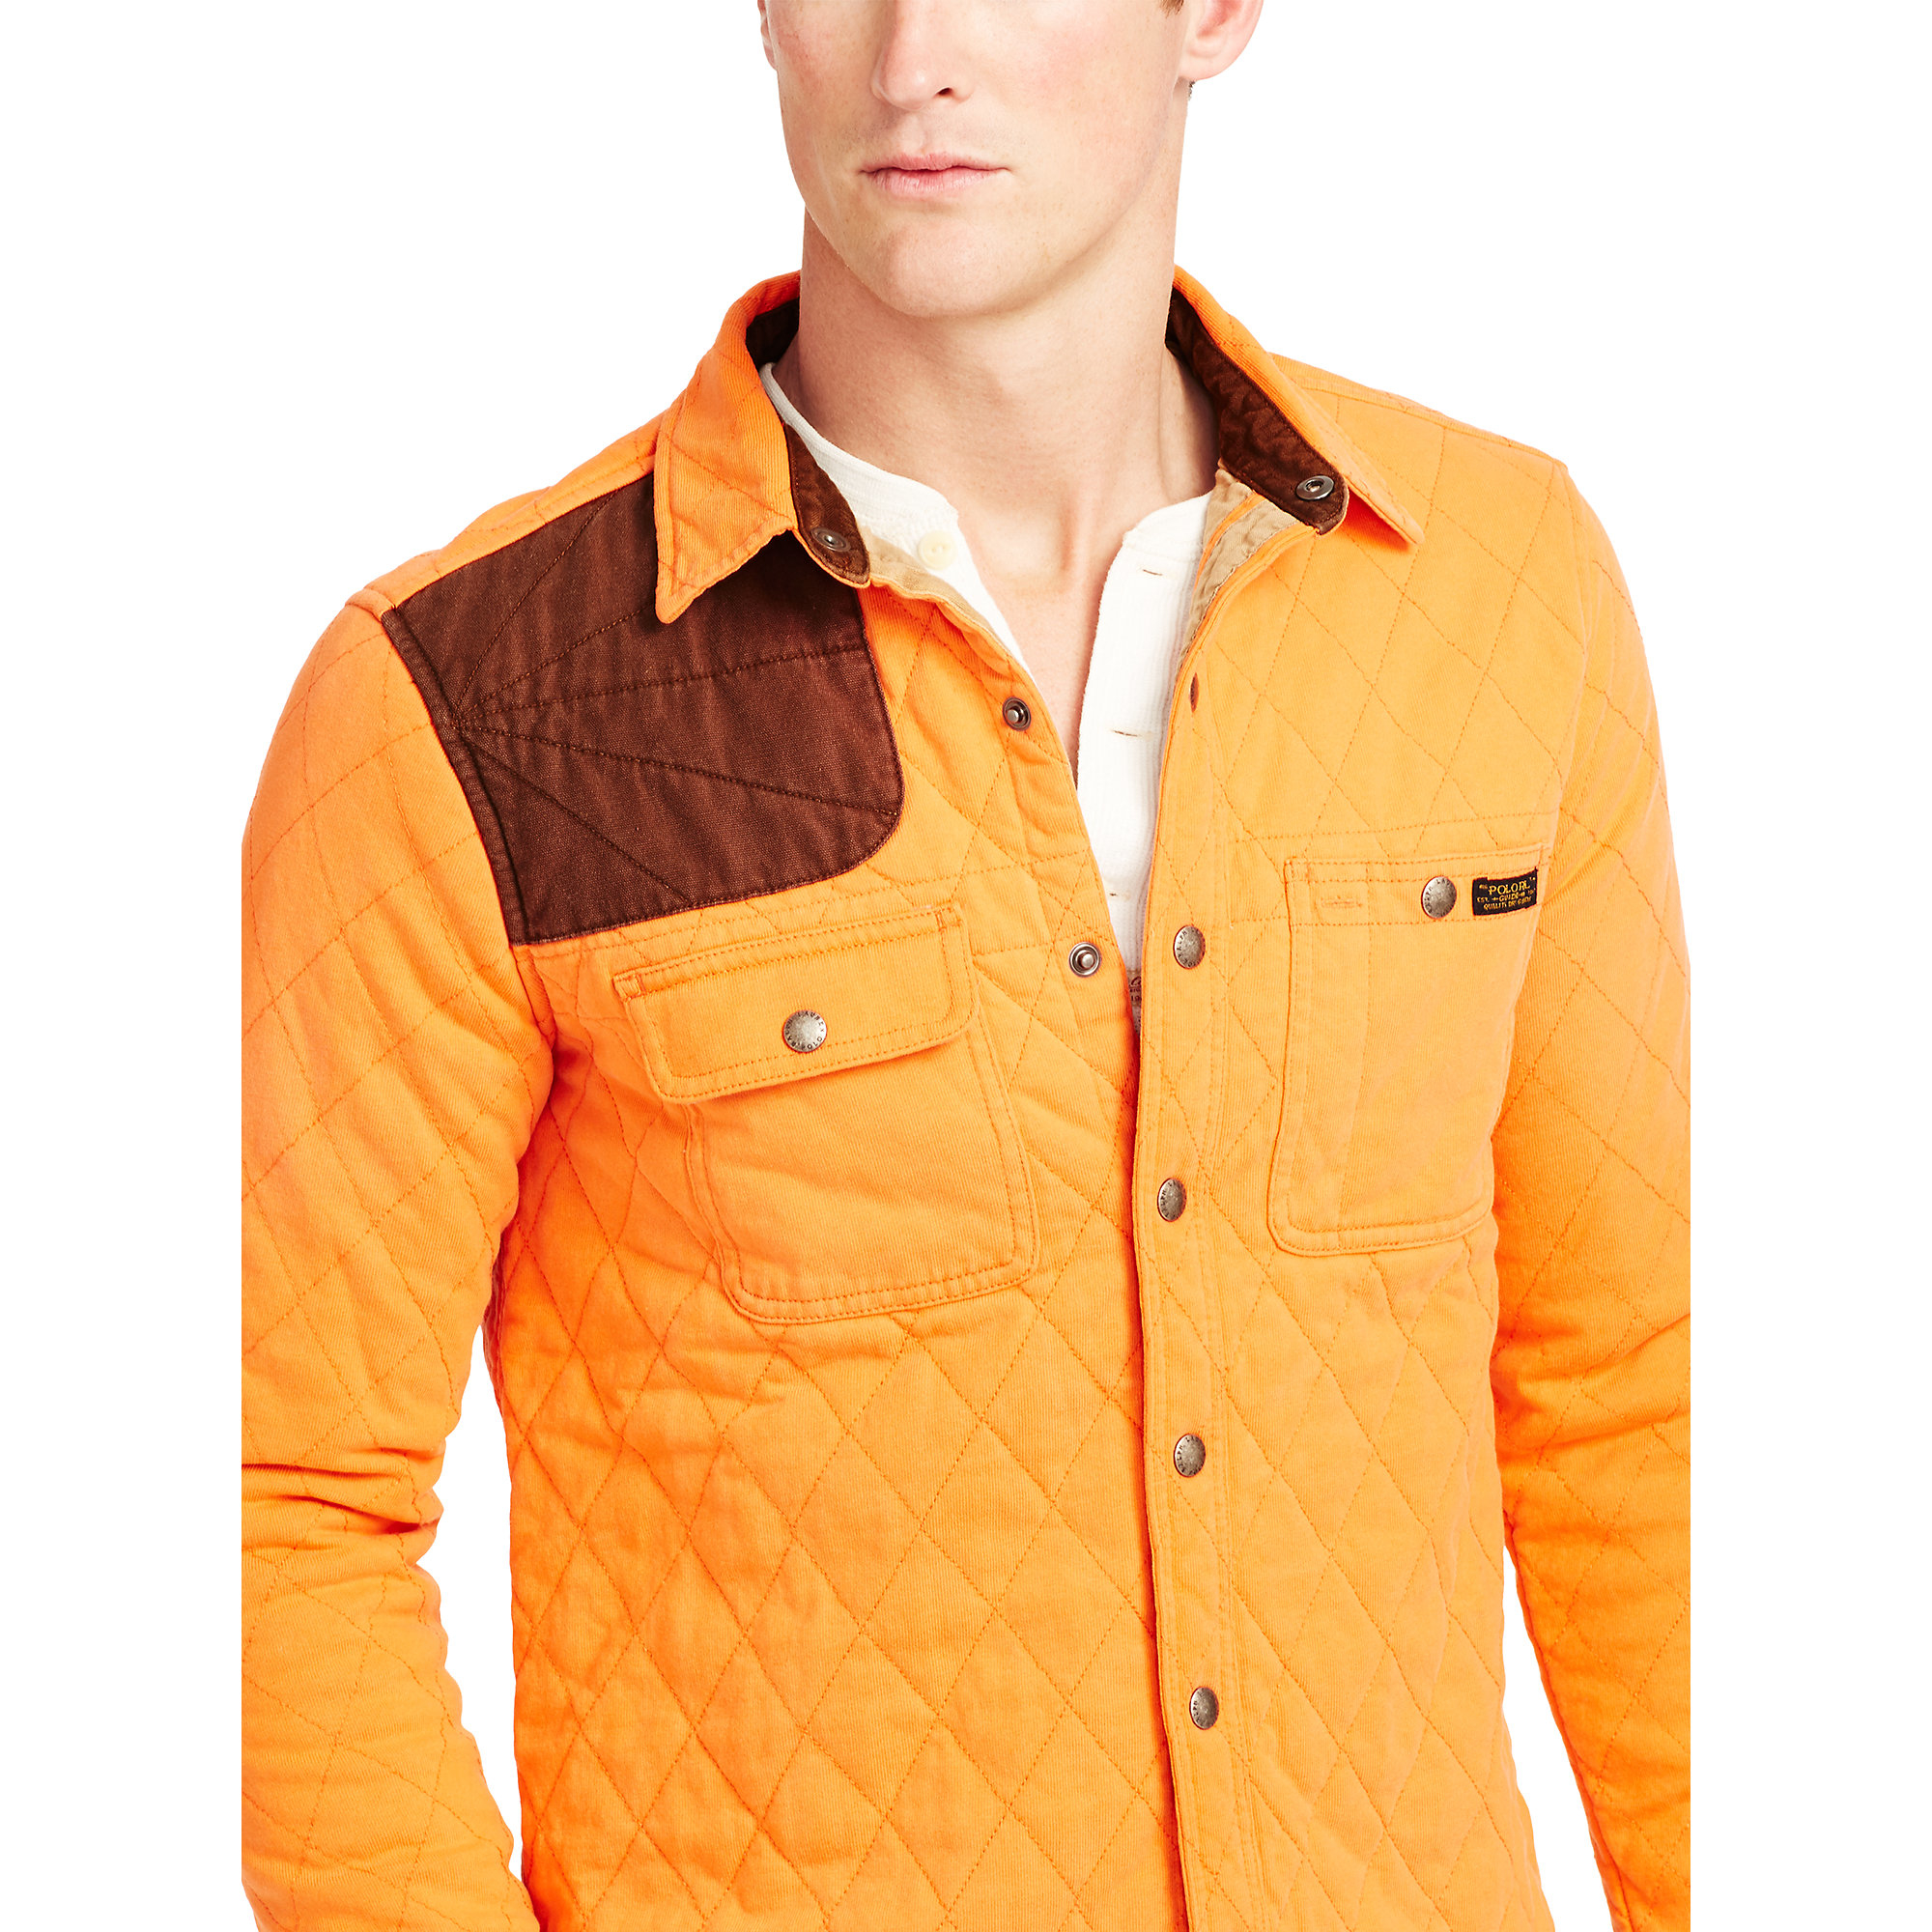 Polo ralph lauren quilted utility shirt jacket in orange for Polo shirt with jacket